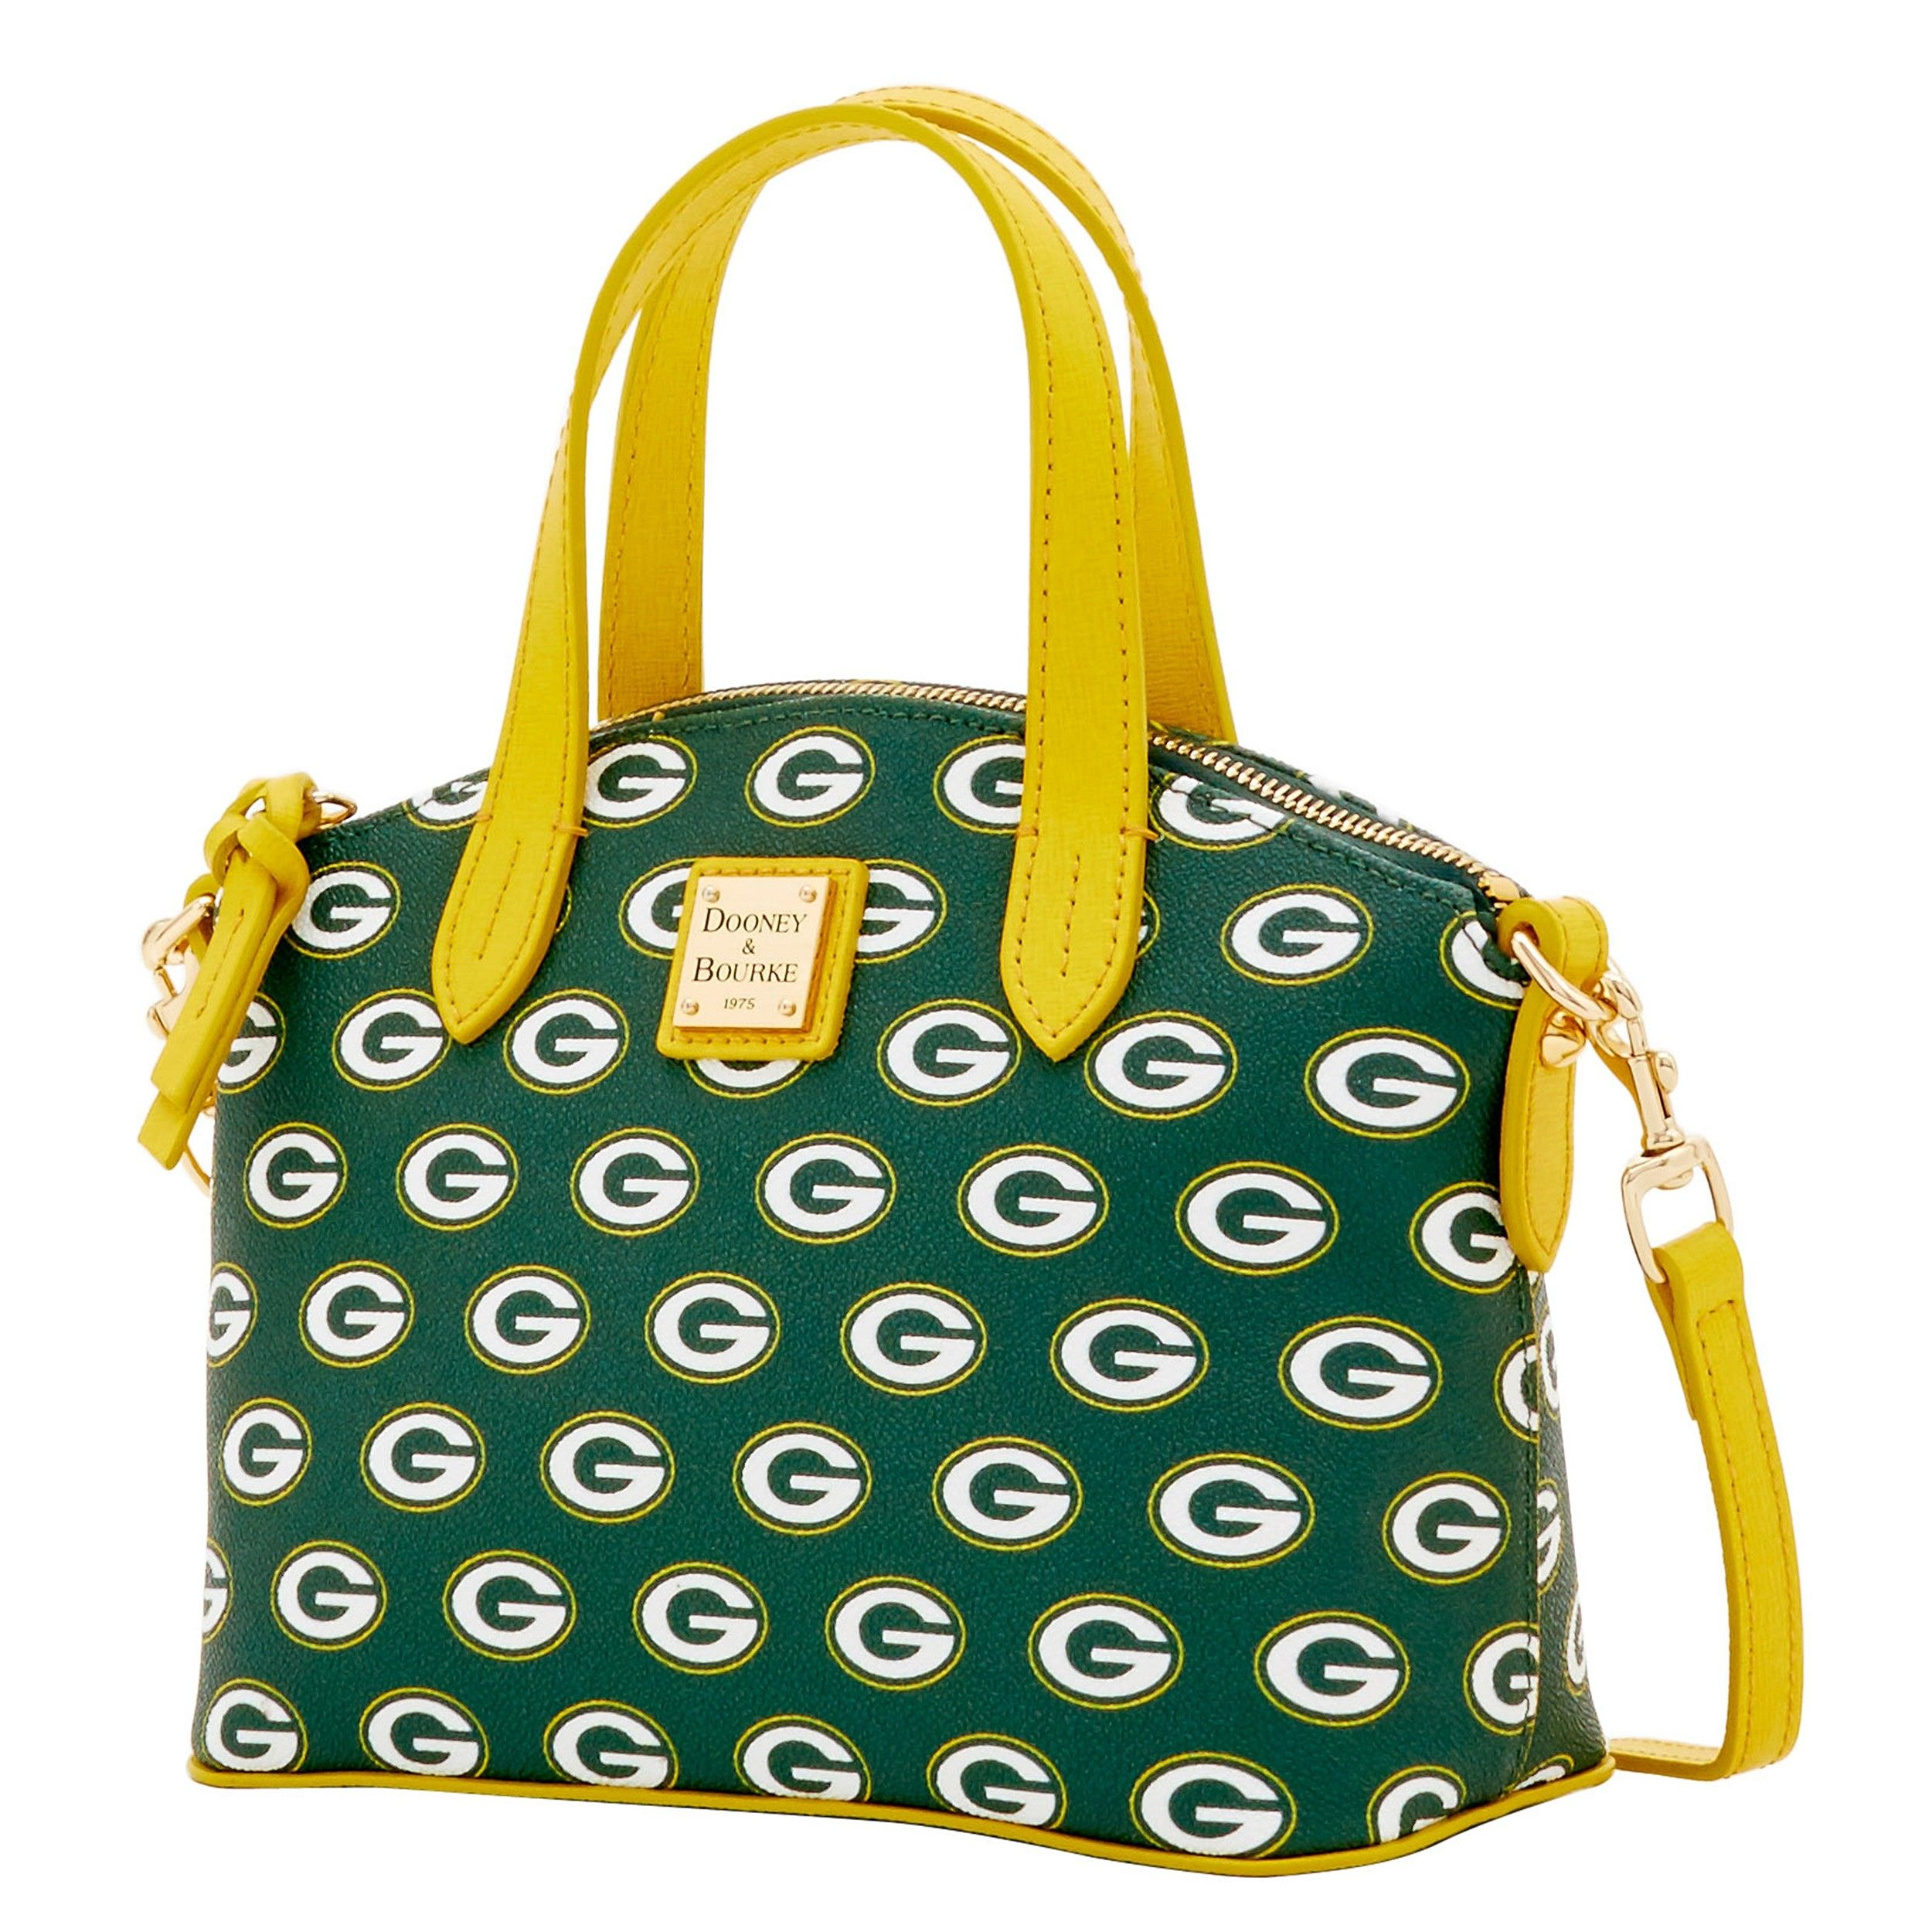 Dooney & Bourke NFL Signature Ruby Bag (Green/Yellow/Packers) Bags